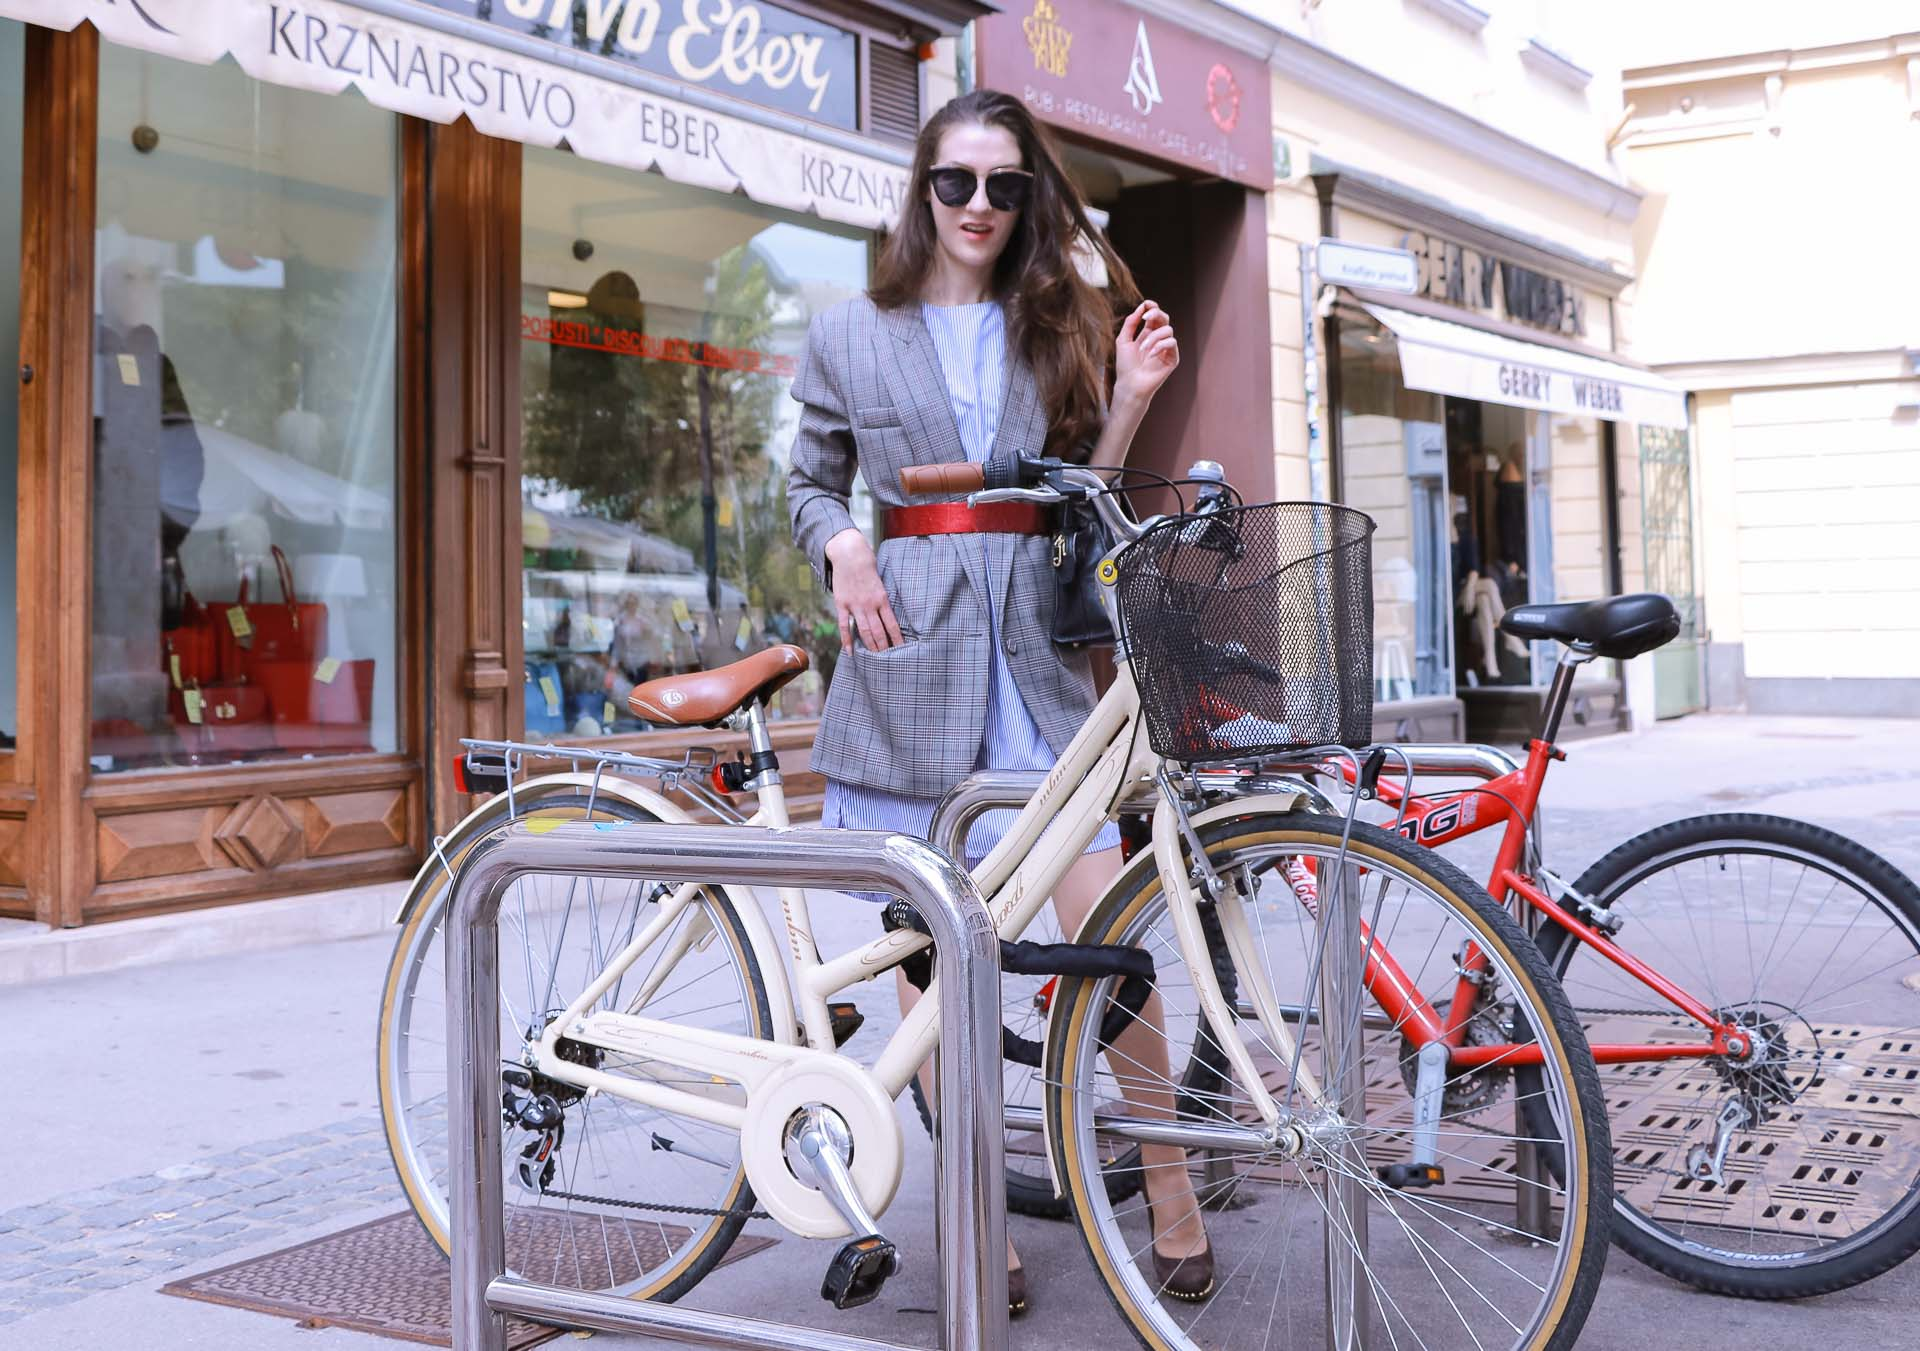 Veronika Lipar Fashion Blogger of Brunette from Wall Street wearing Erika Cavallini plaid blazer, blue striped shirtdress, red belt, brown court shoes, black top handle bag, Le Specs black sunglasses while standing behind the bicycles